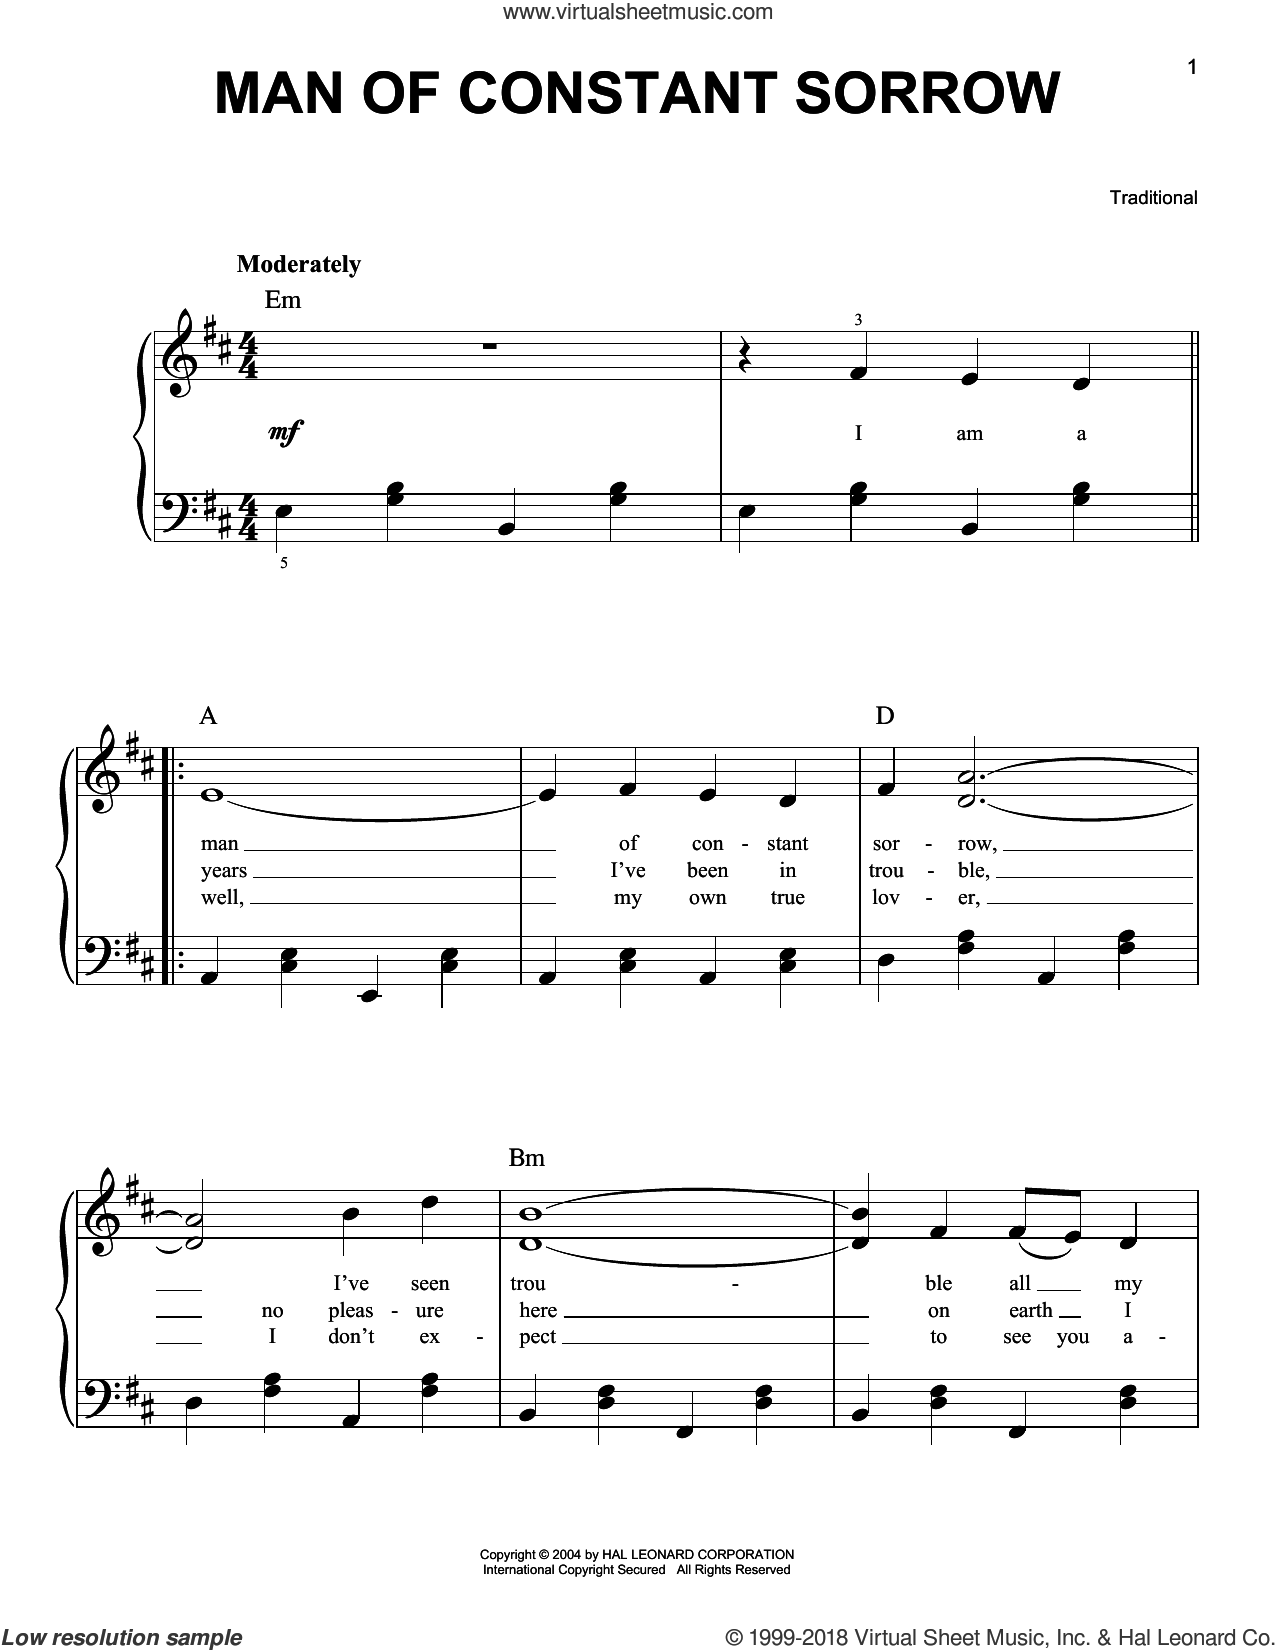 Man Of Constant Sorrow sheet music for piano solo, easy skill level